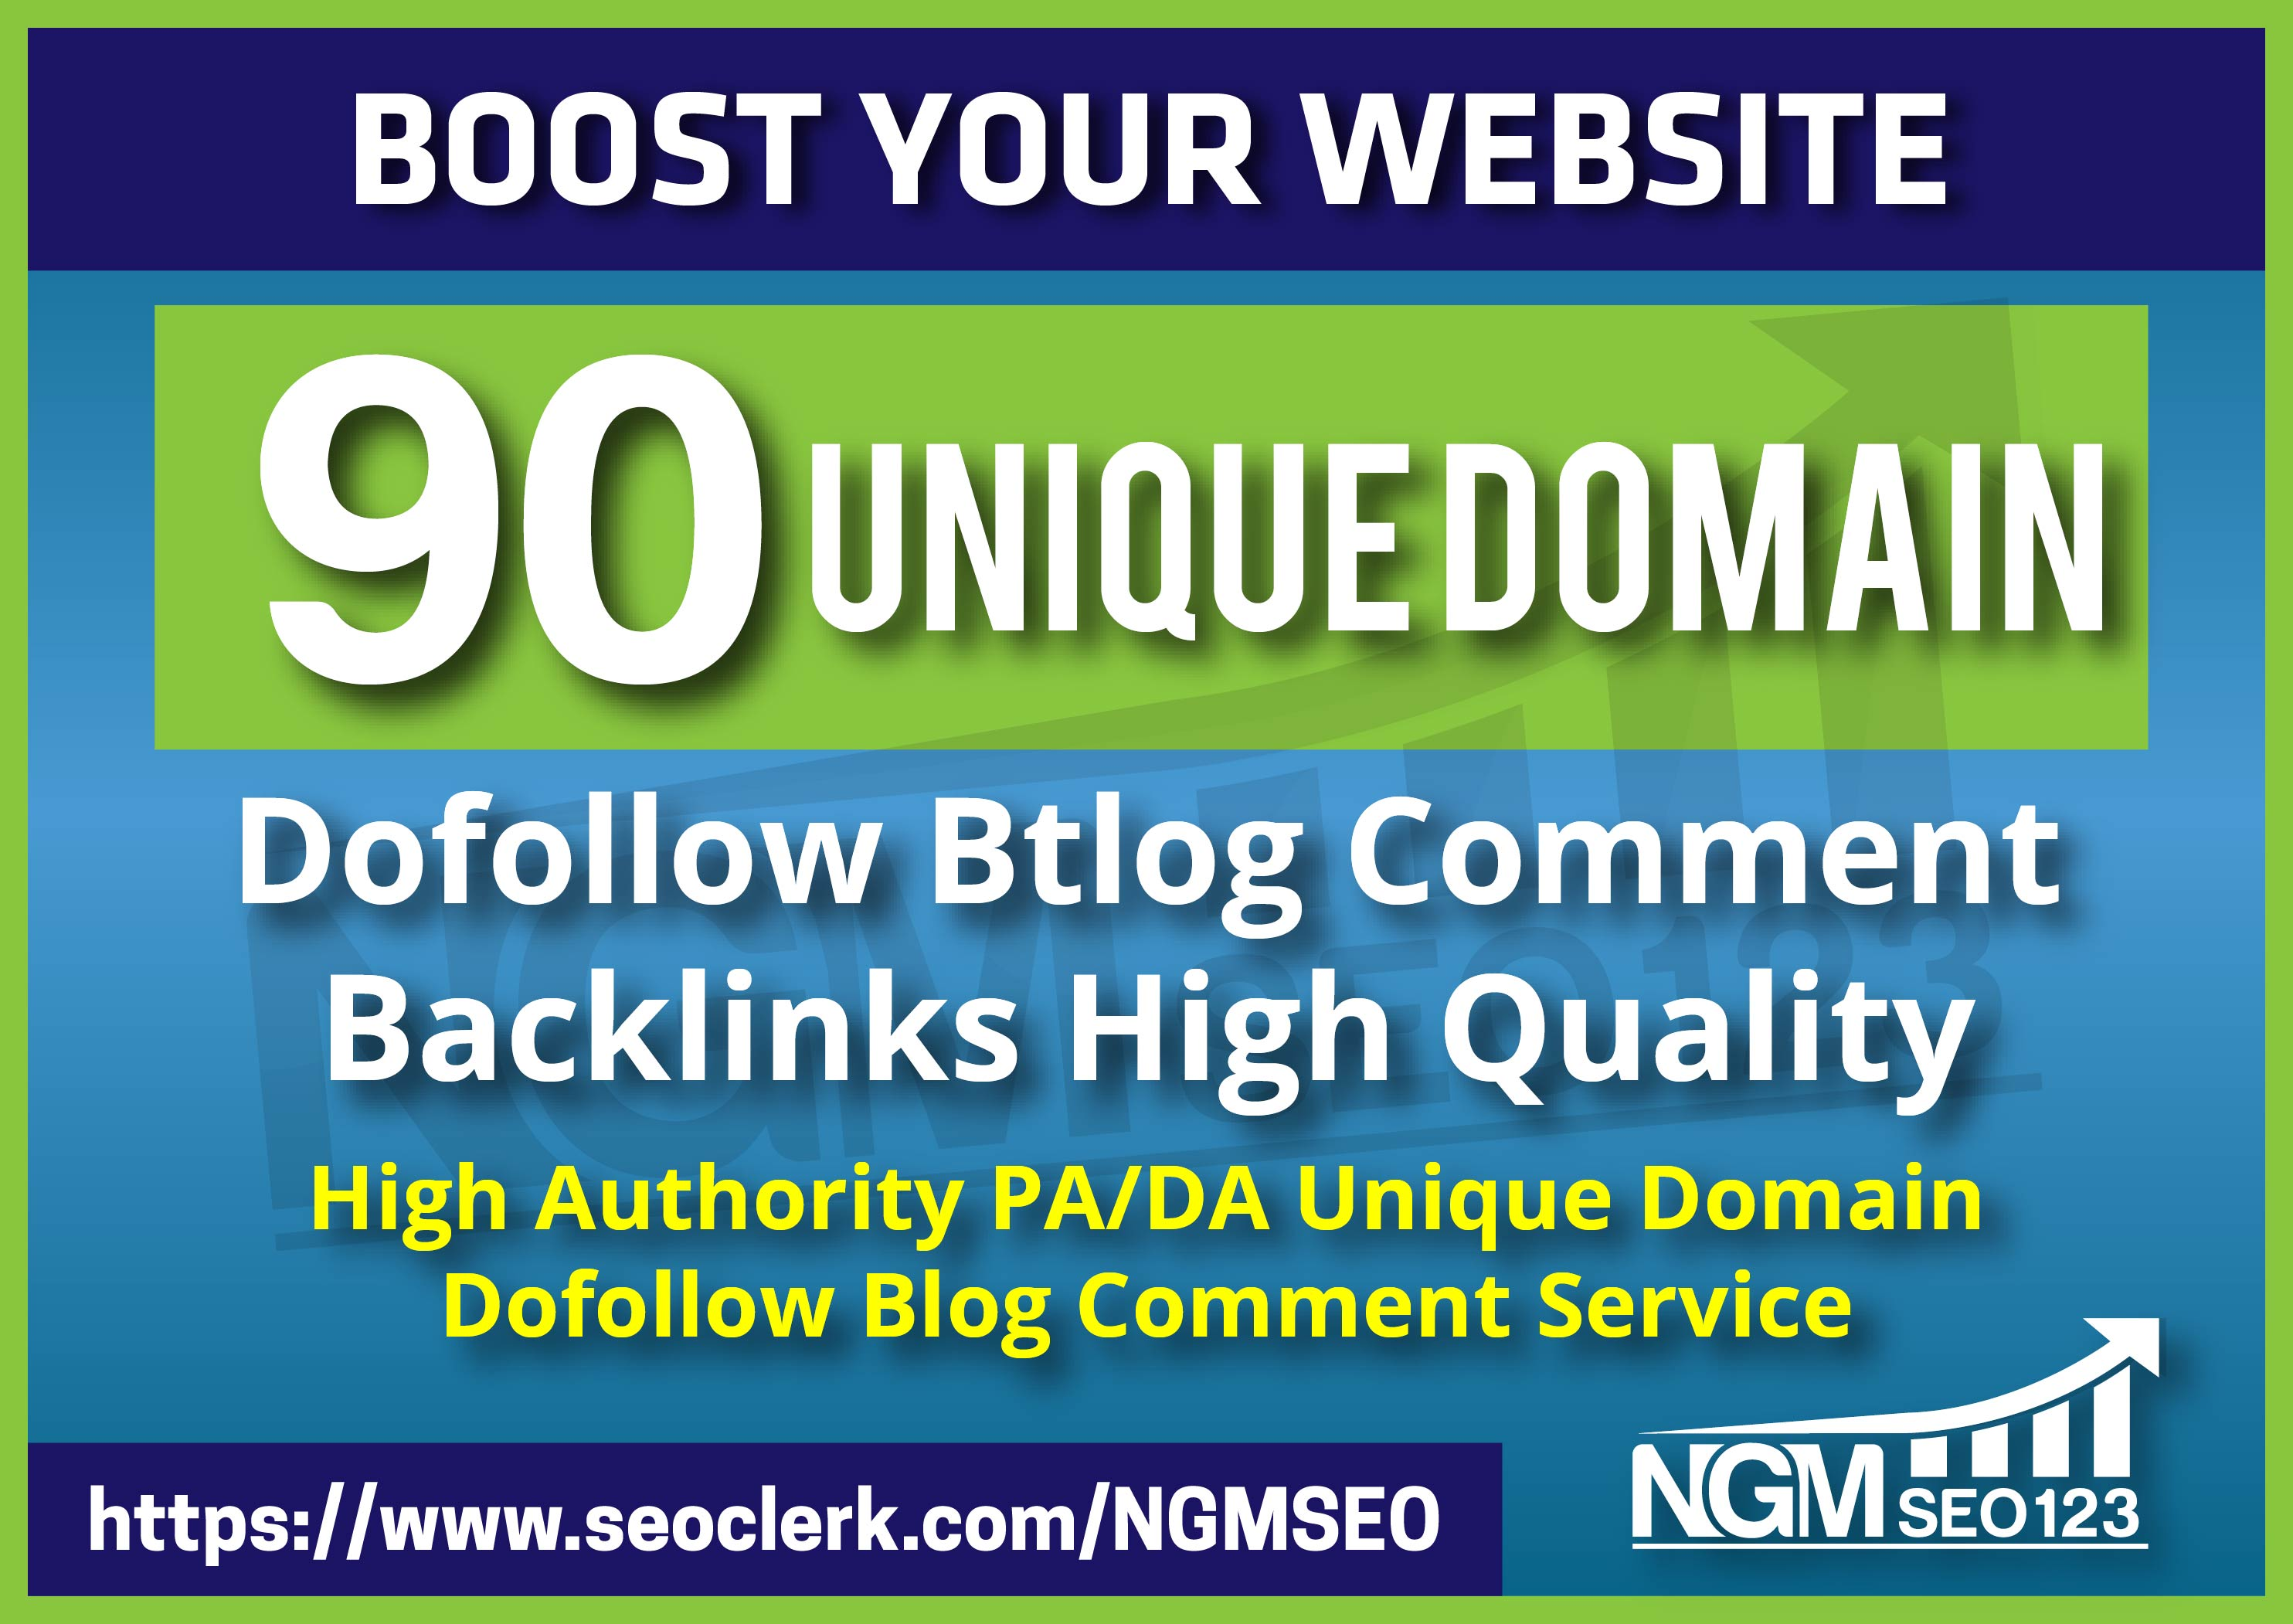 Provide 90 Unique Domain SEO Backlinks on tf100 da100 sites